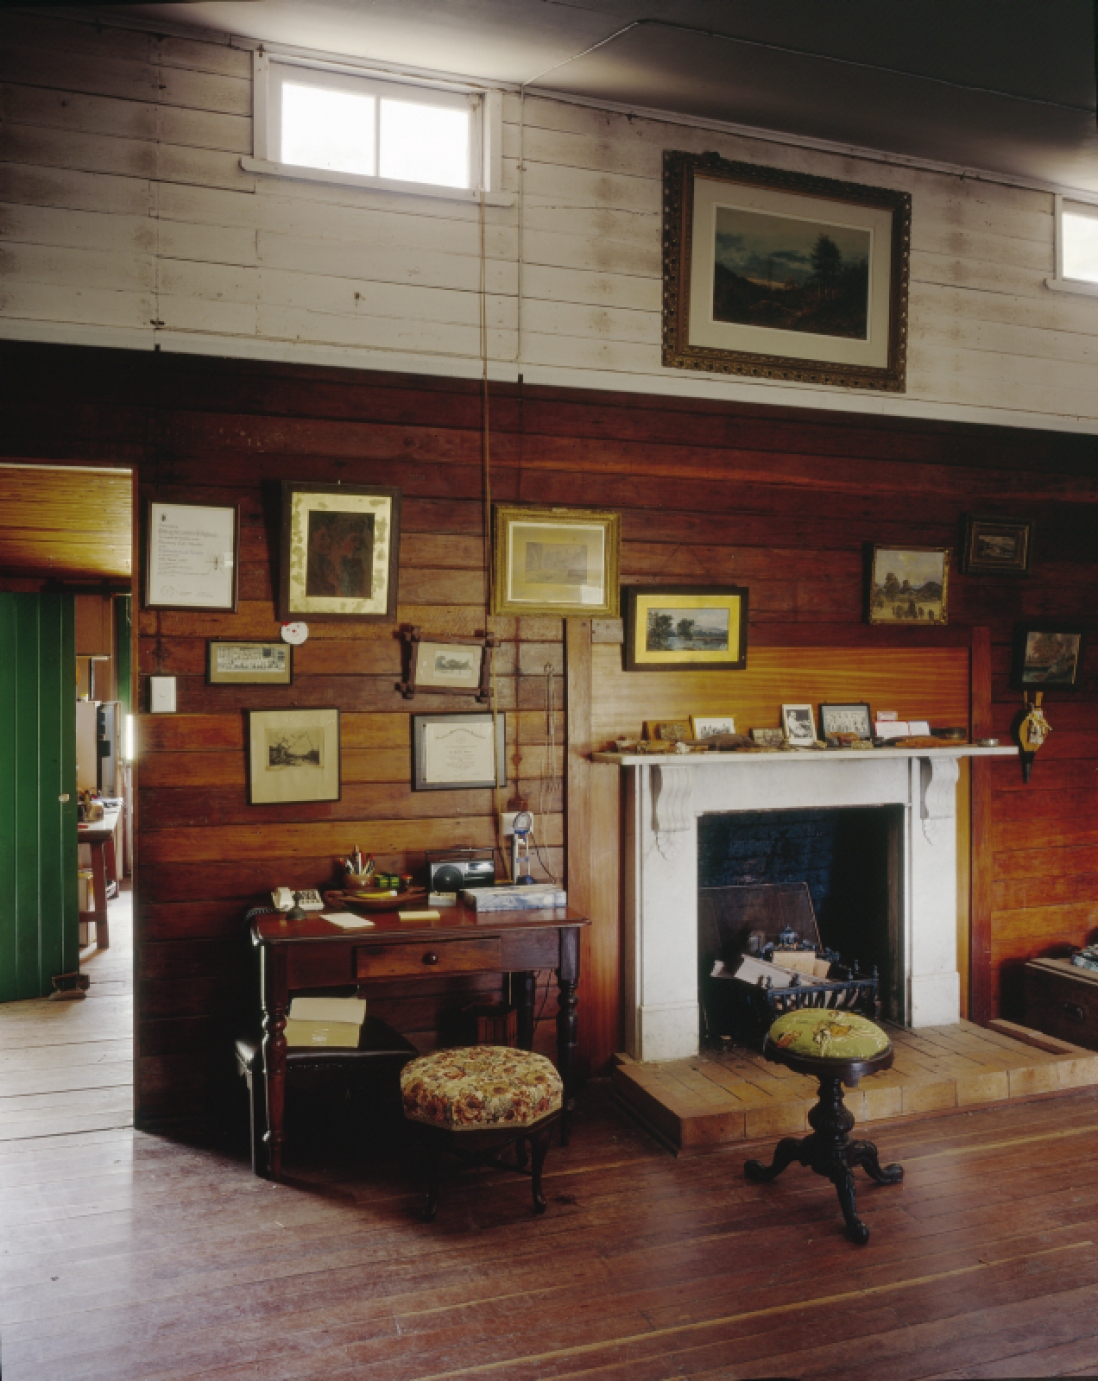 Marks family property 'The Barracks', Camp Mountain, Queensland.